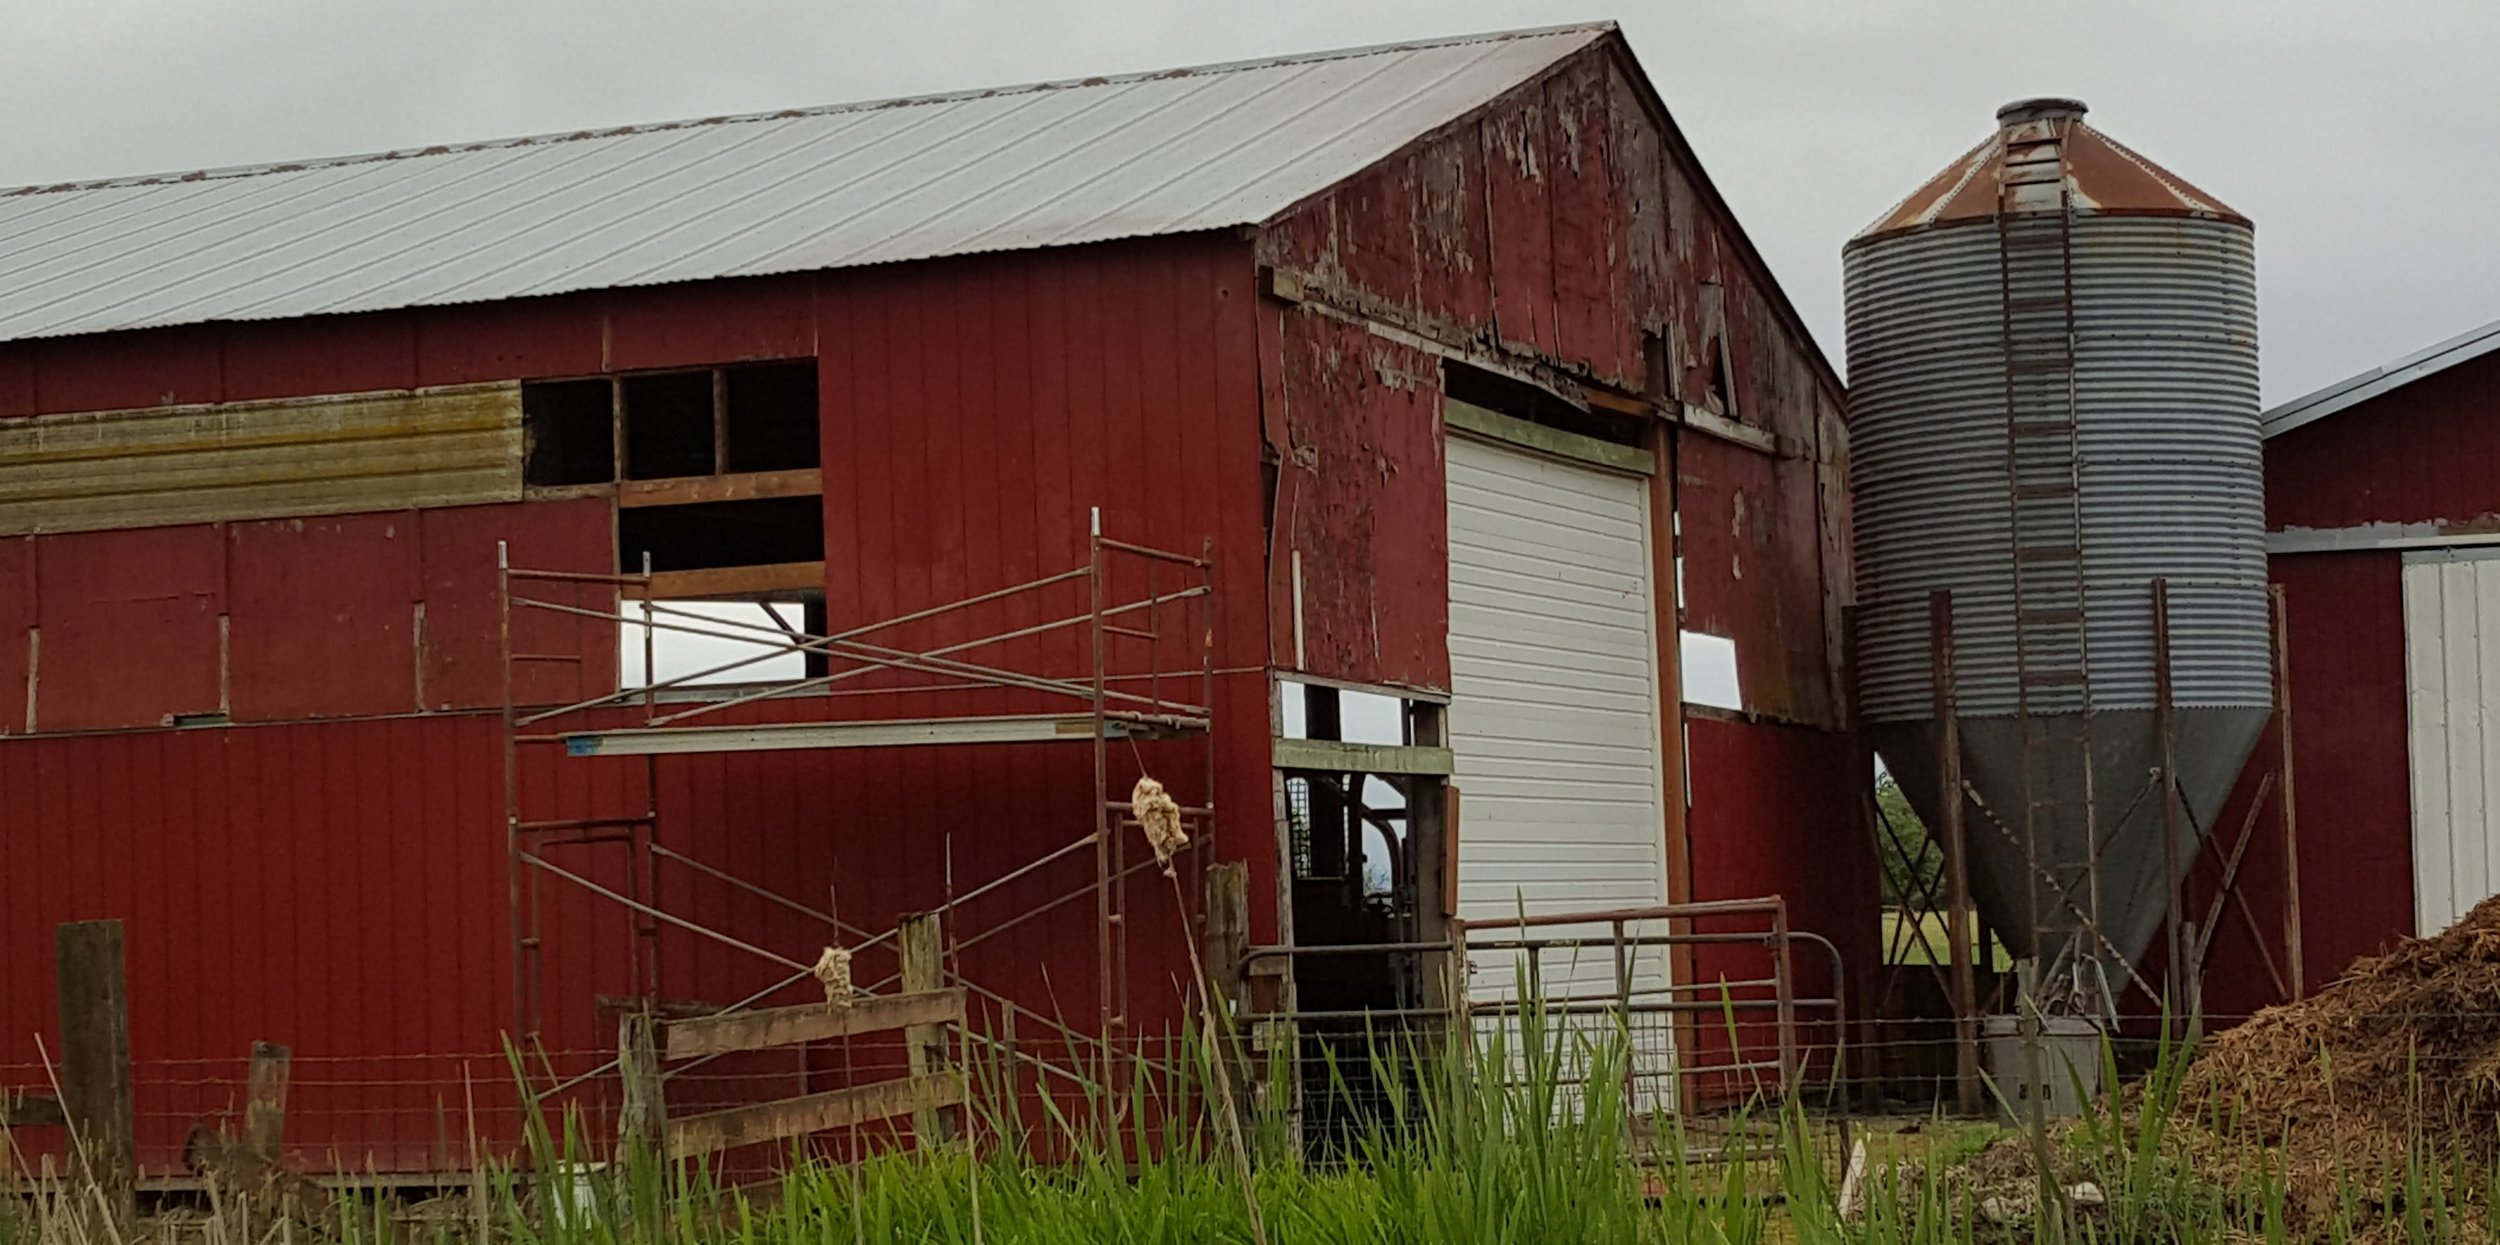 Two years of re-siding sheep barn thanks to our son, Nils Dunder, and his friend, Dave.